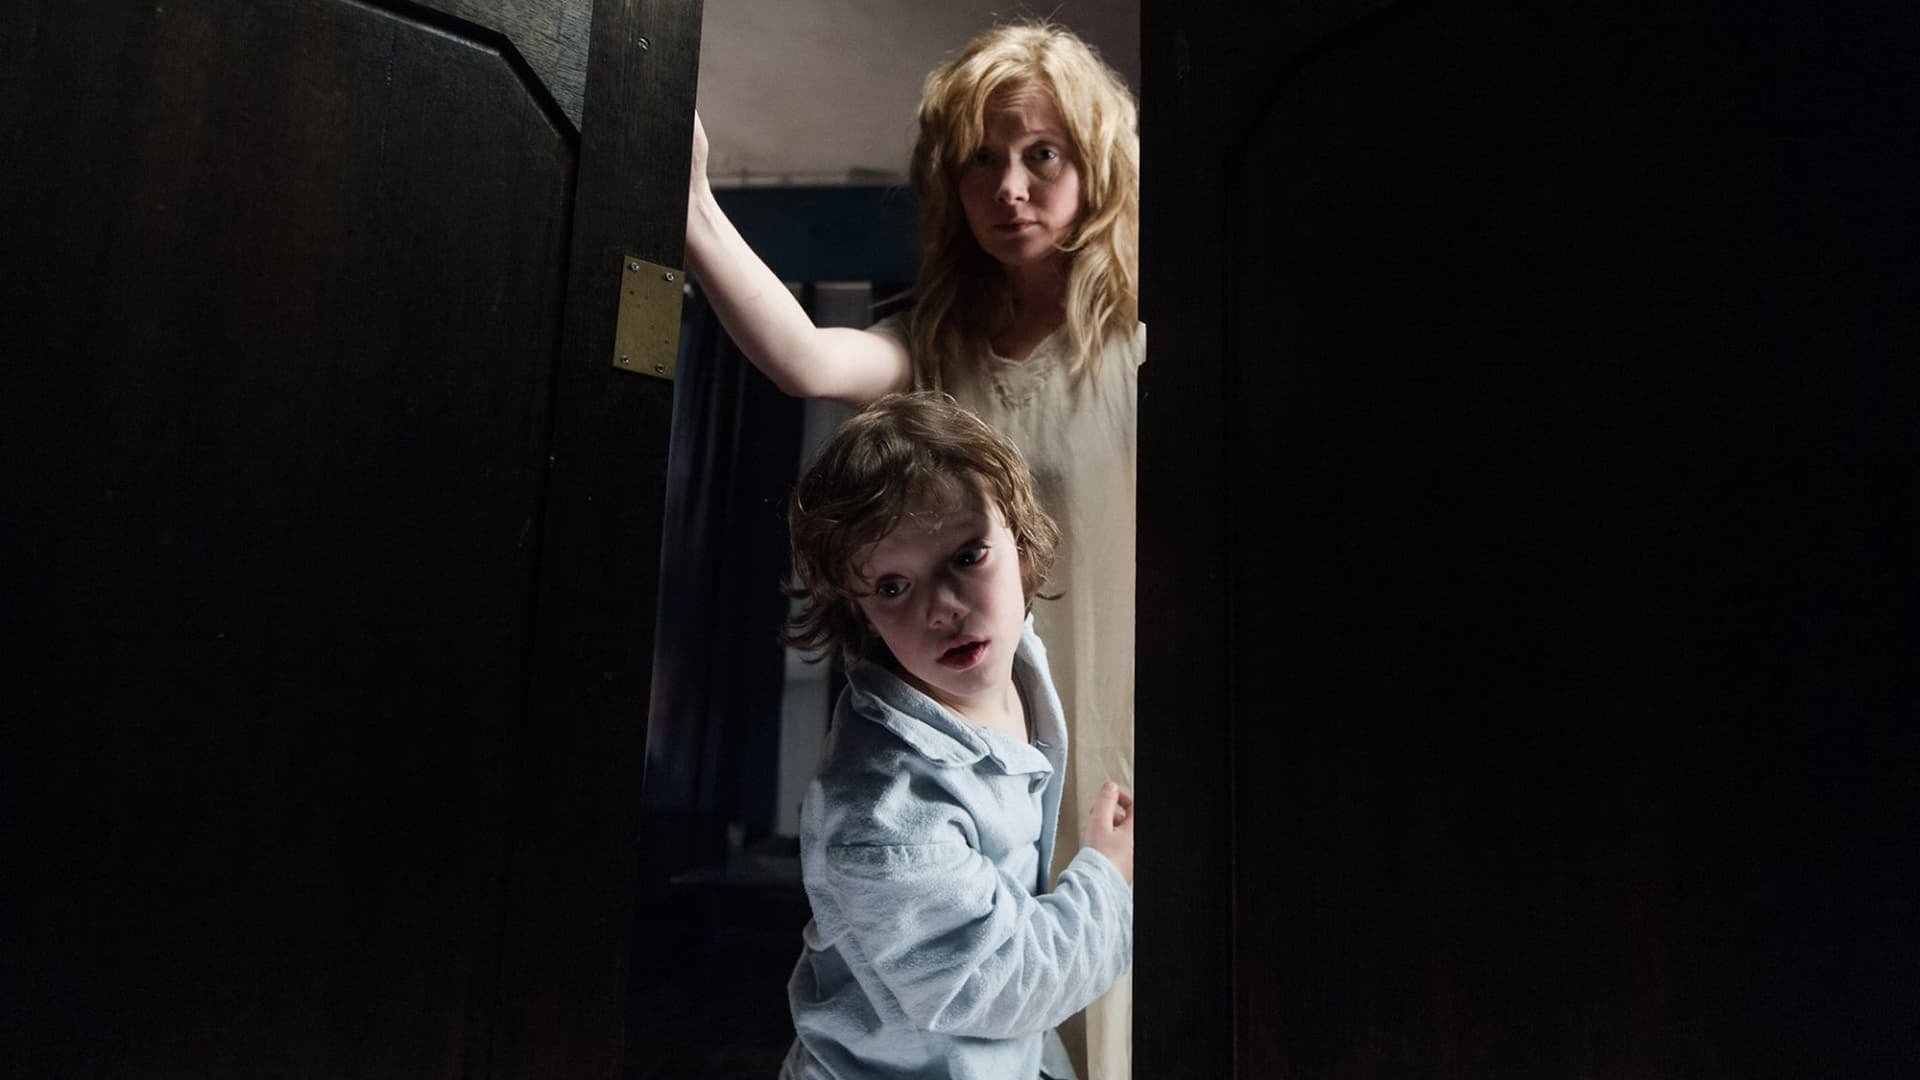 Noah Wiseman is super creepy as Samuel in The Babadook